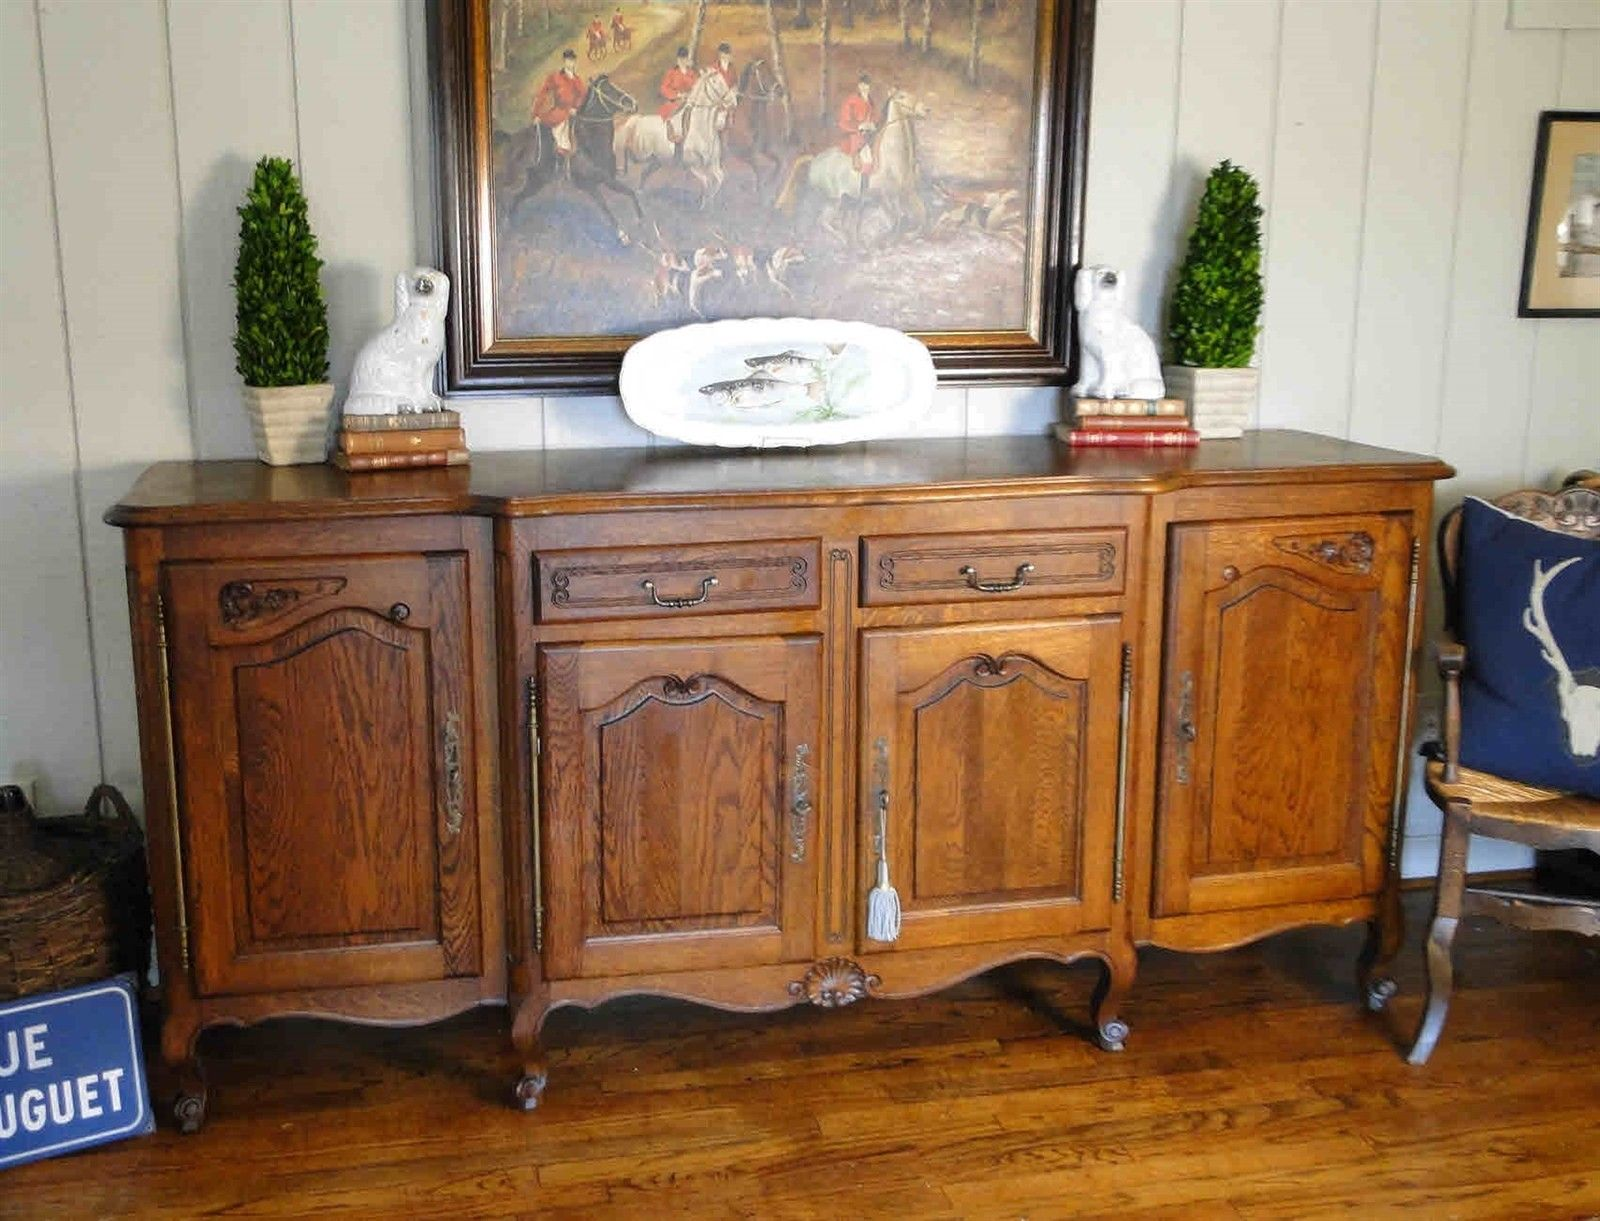 Antique French Country Louis-XV Buffet Sideboard Parquet 4-Door Carved Oak Shell